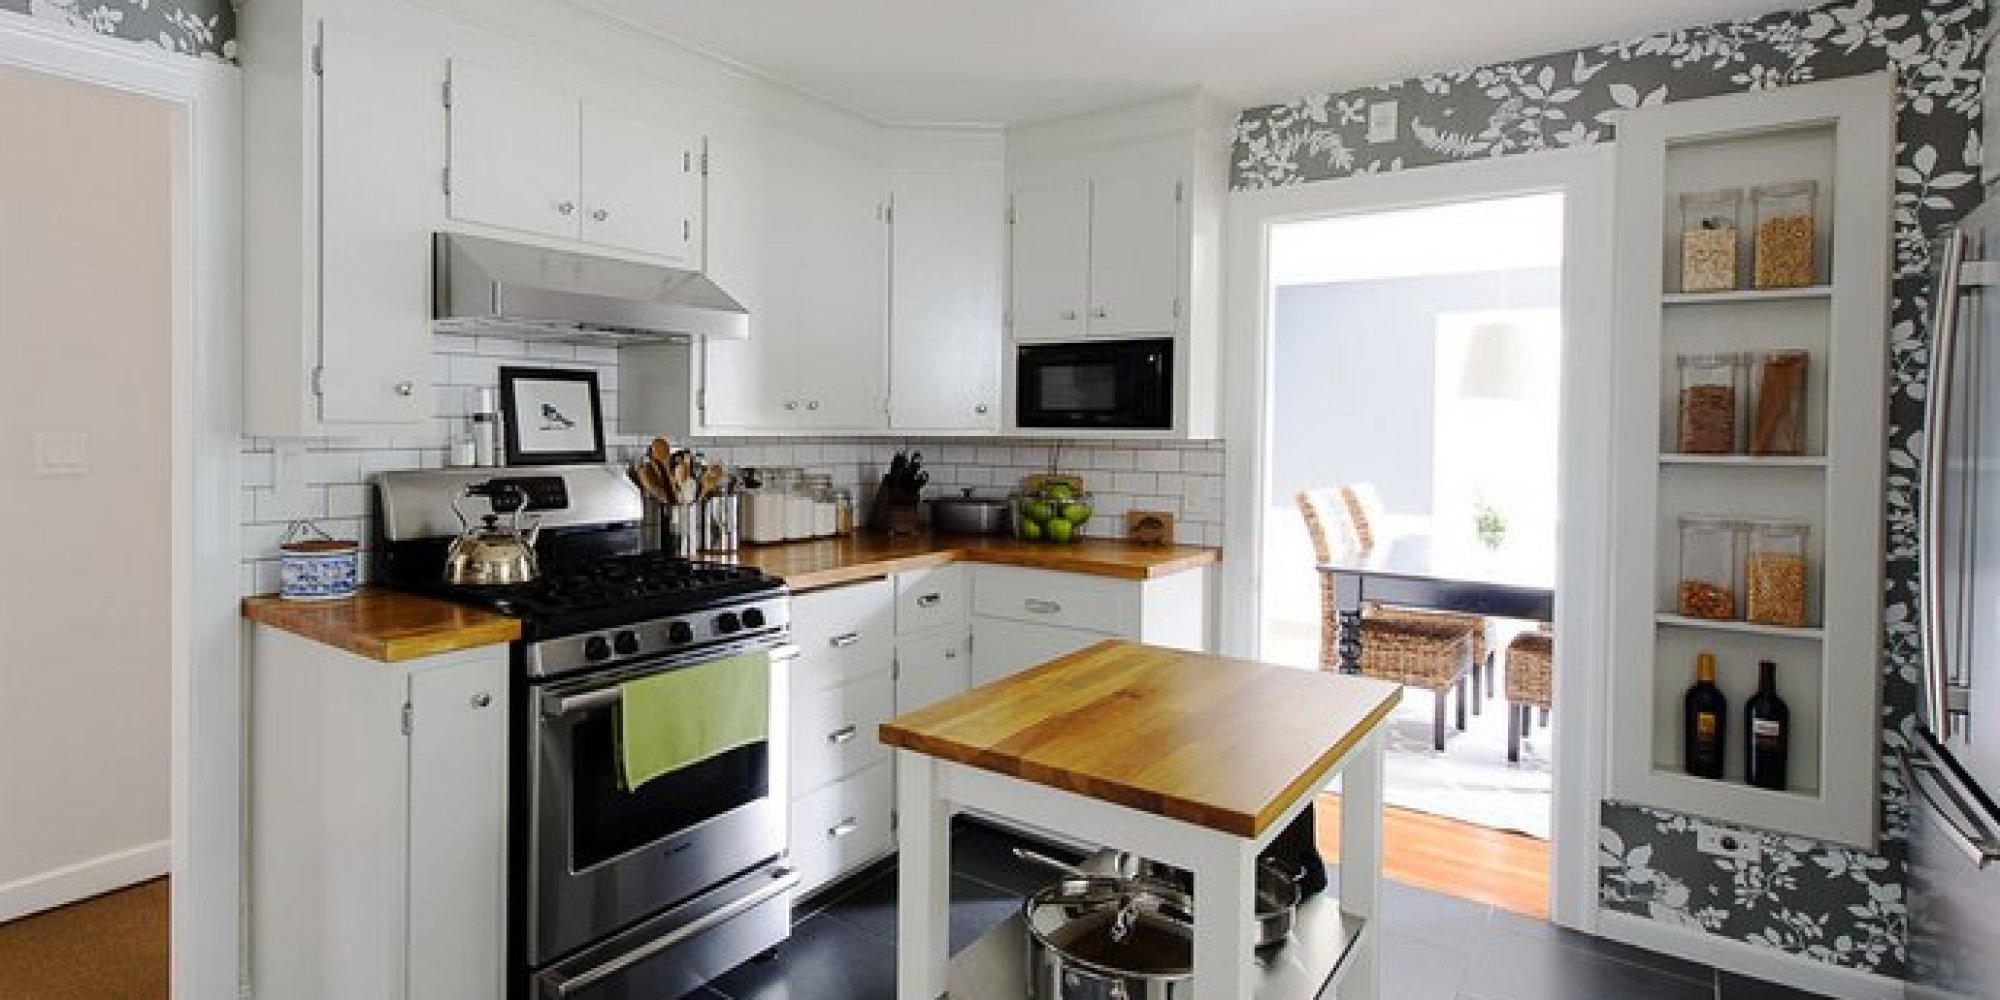 Small Kitchen Design On A Budget add an island 19 Inexpensive Ways To Fix Up Your Kitchen Photos Huffpost